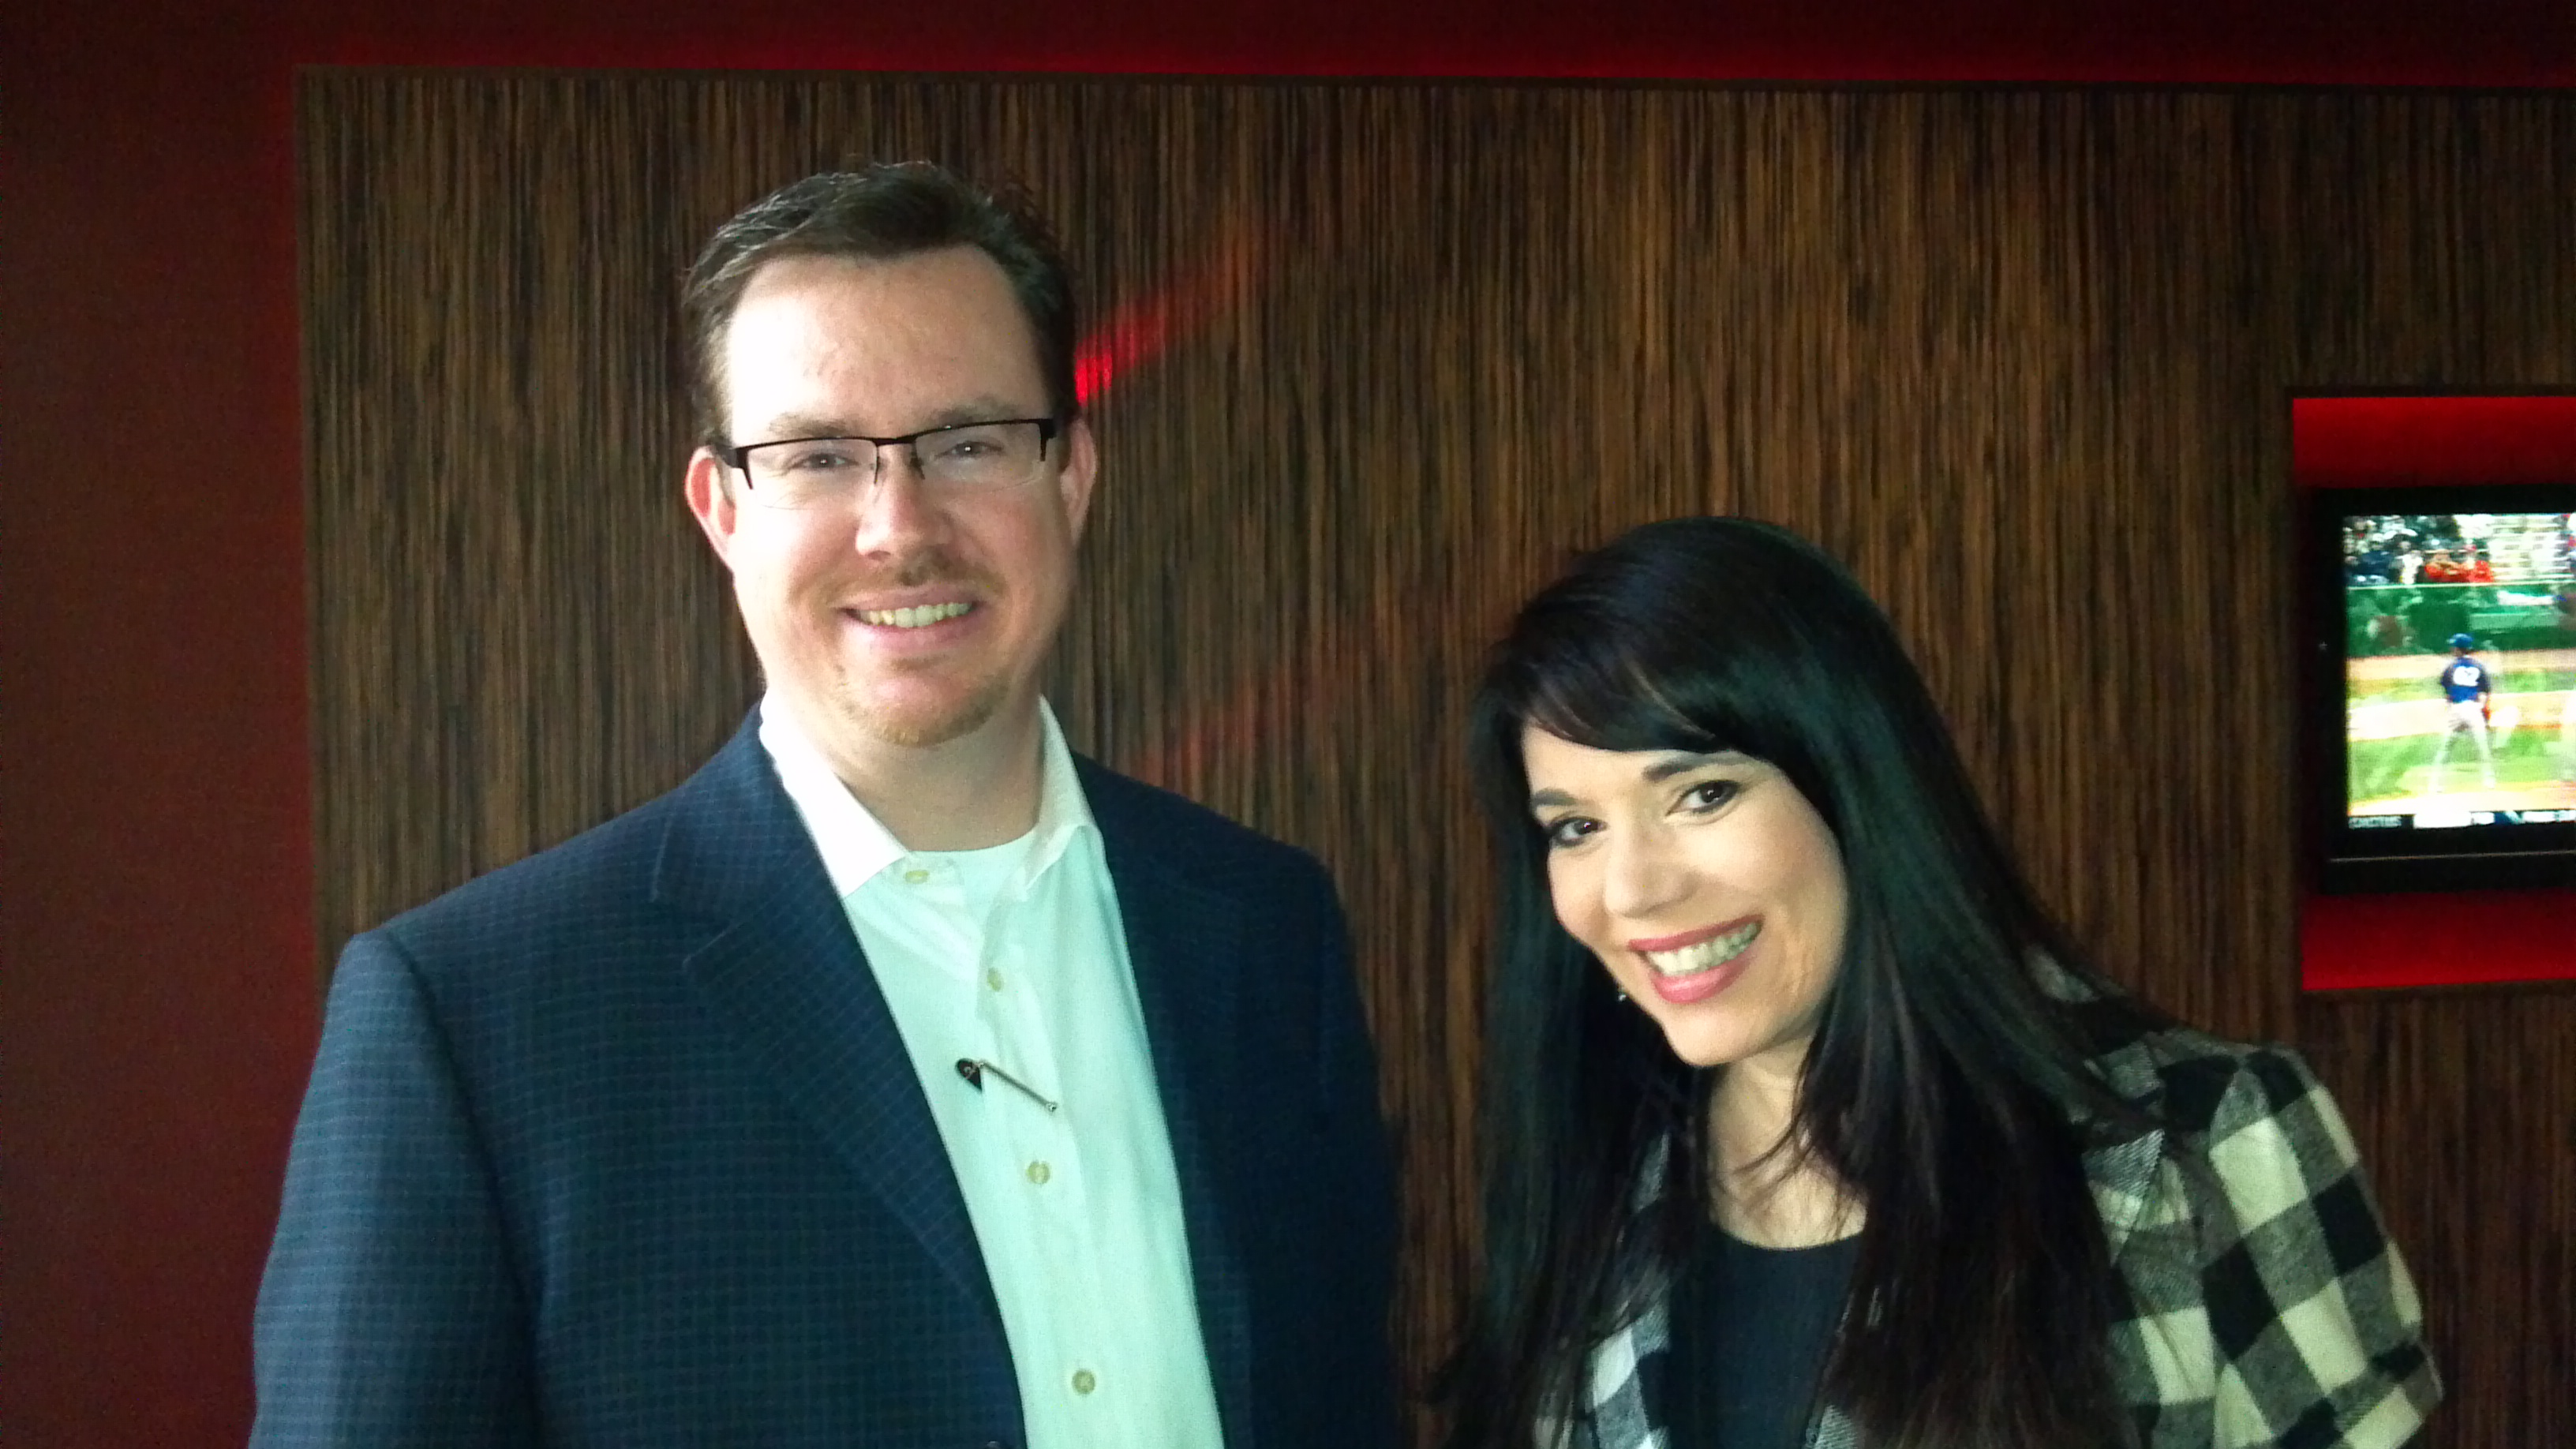 Jared Geesey and Cheryl Ariaz Wicker